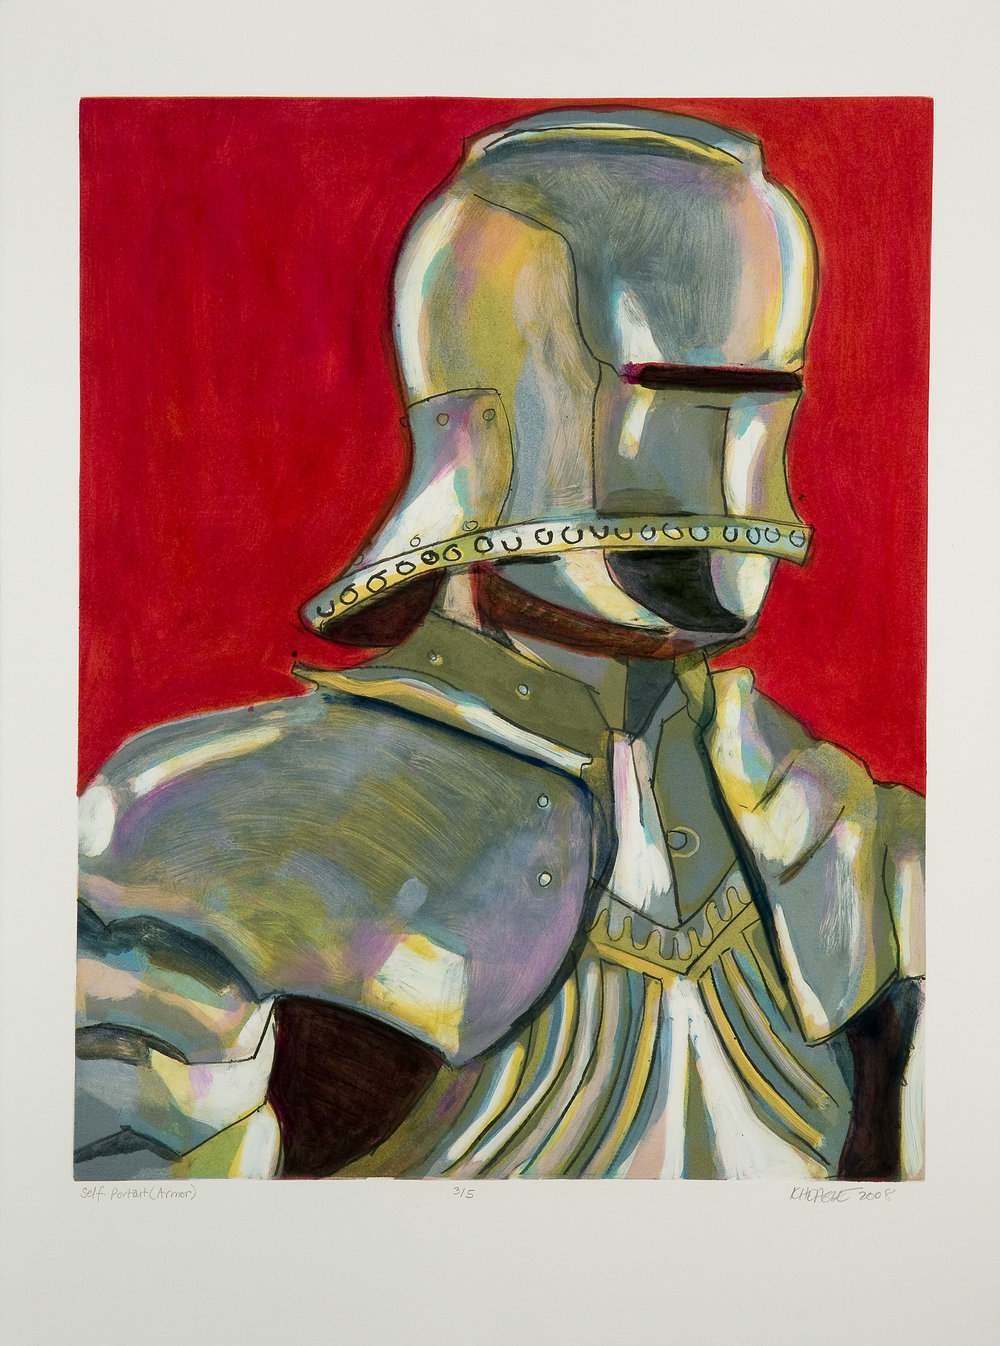 Self Portrait (Armor) (III) , 2008 Monotype Image size: 18.75 x 23.75 inches Paper size: 22 x 30 inches Series of 5